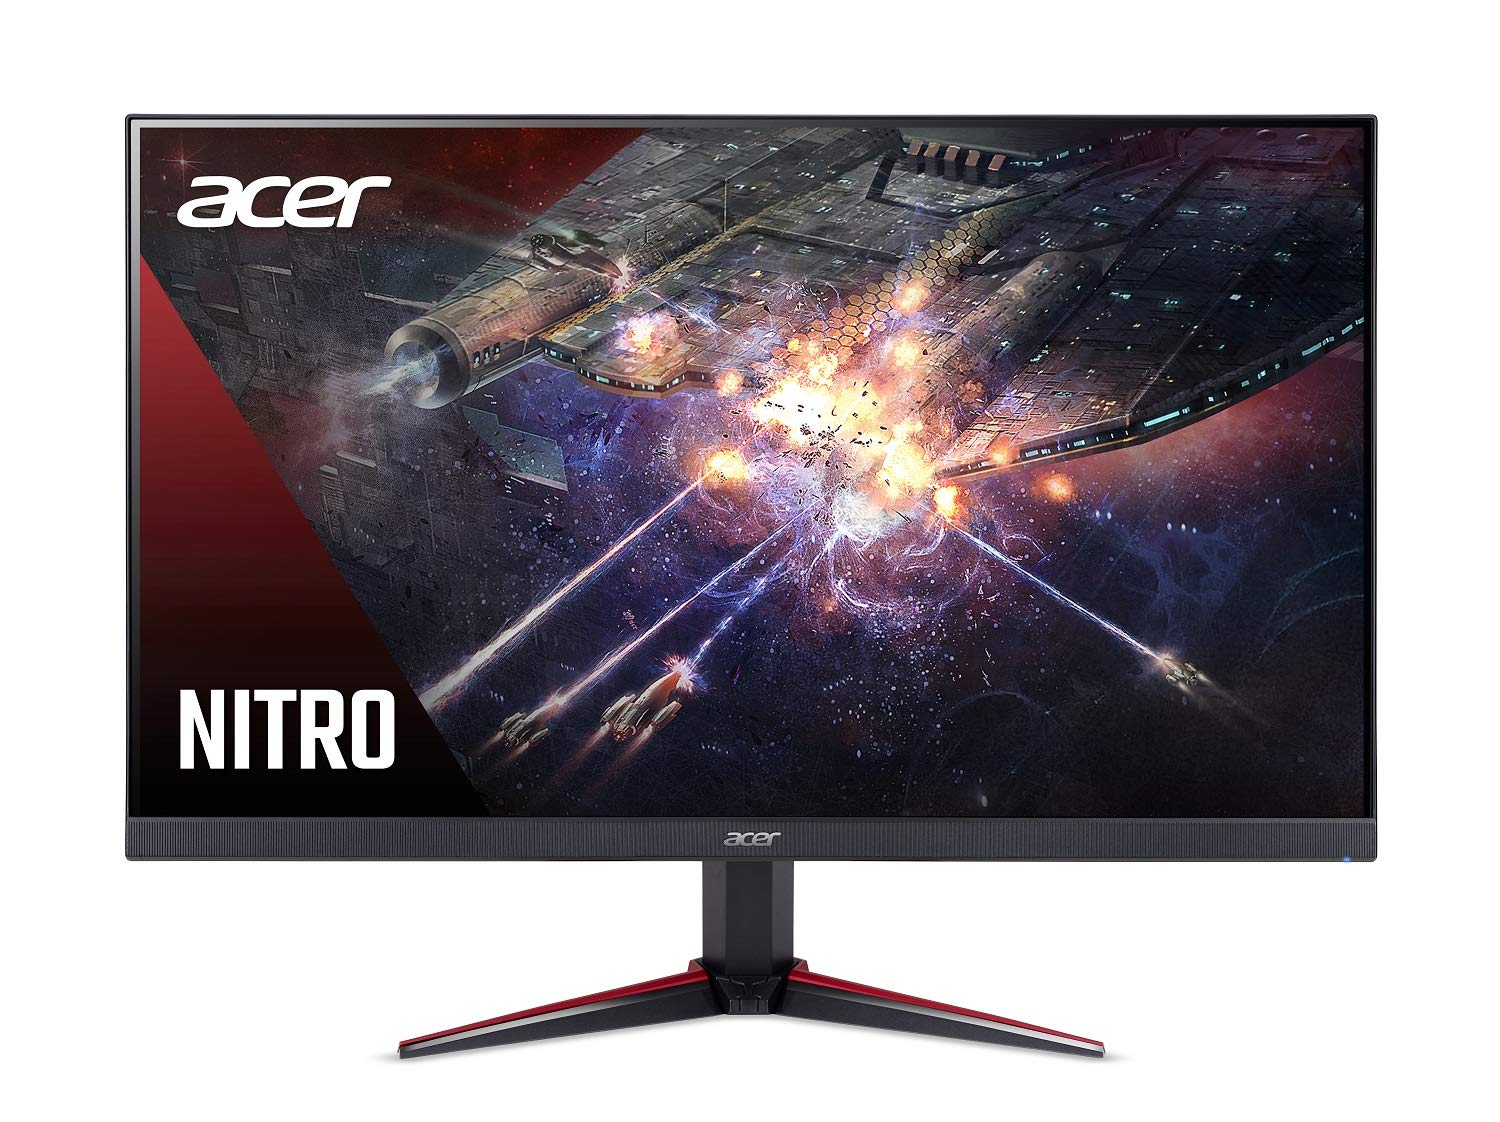 The 8 Best & Cheap 144Hz Gaming Monitors (Reviewed December 2019) 4